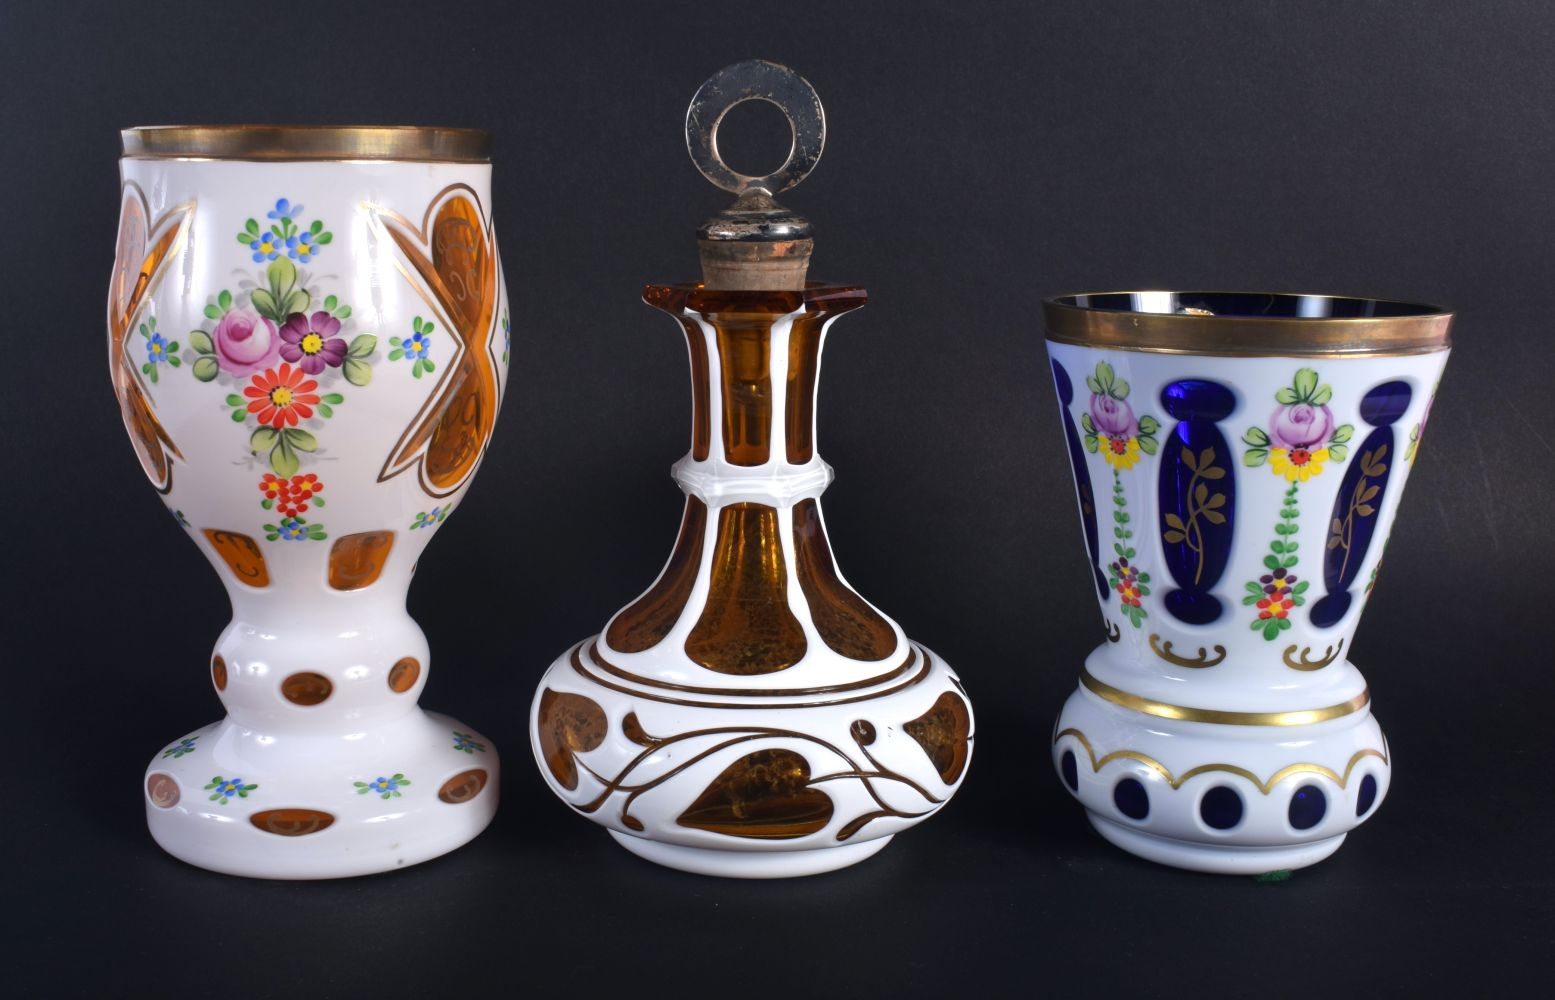 A BOHEMIAN ENAMELLED GLASS GOBLET together with two others. Largest 18 cm high. (3) - Image 2 of 3